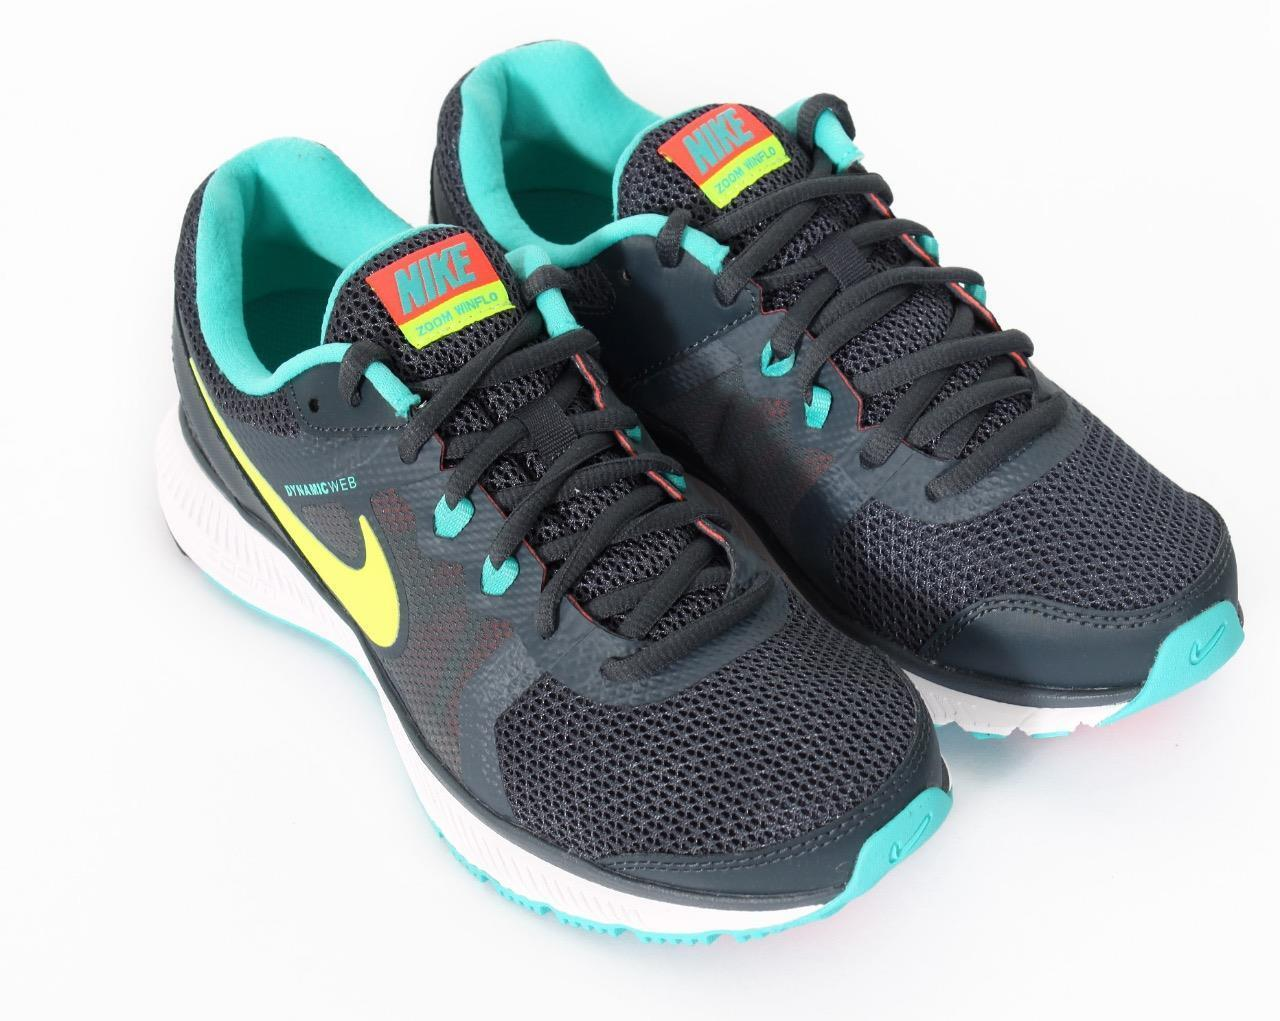 Nike Zoom Winflo Women's Shoes 684490 002  NIB Authentic Sneakers New shoes for men and women, limited time discount